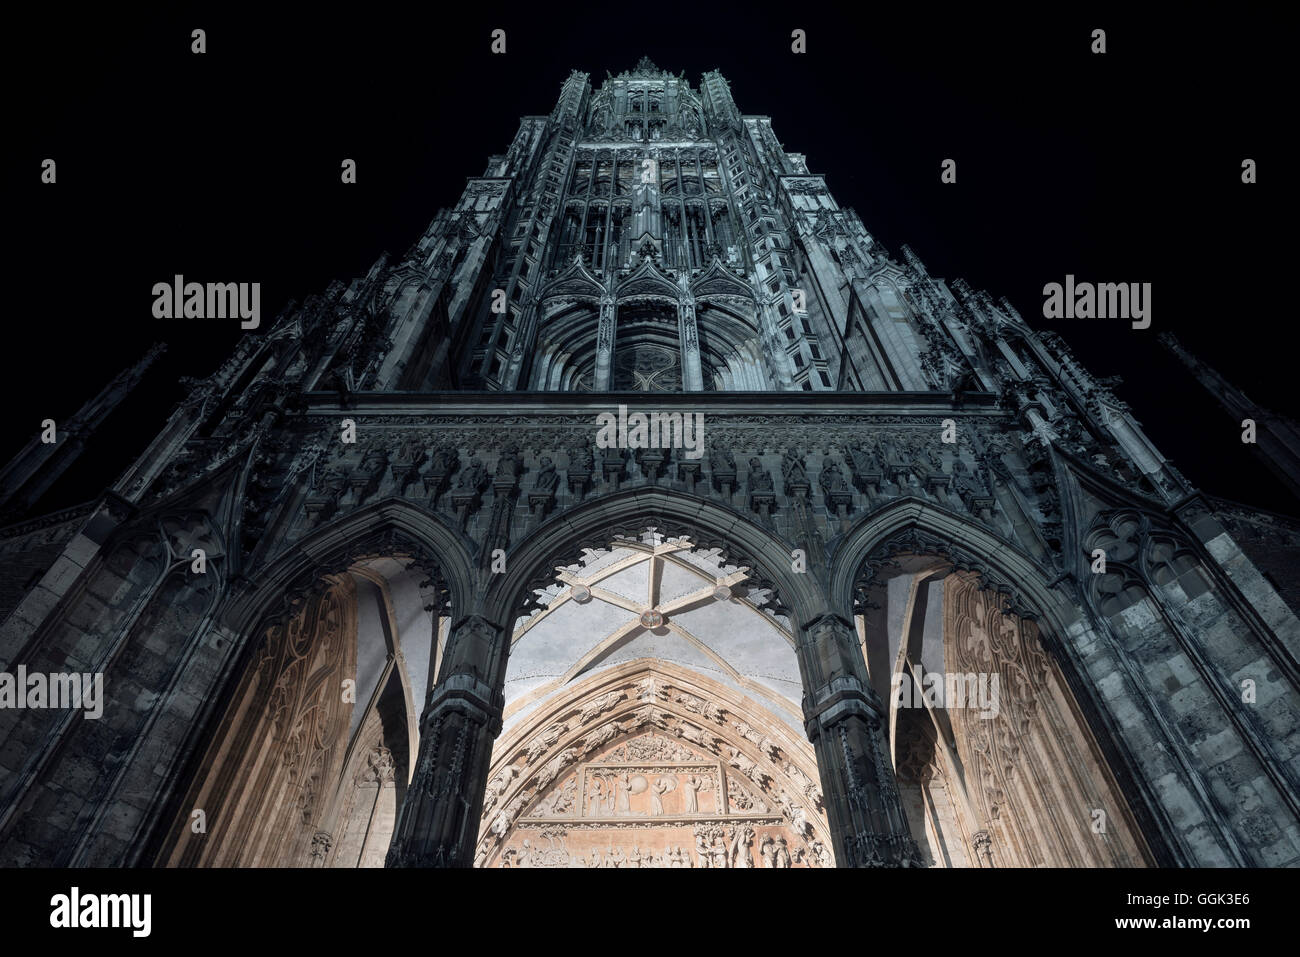 symmetrical front view of Ulm Cathedral, Ulm, Swabian Alp, Baden-Wuerttemberg, Germany - Stock Image